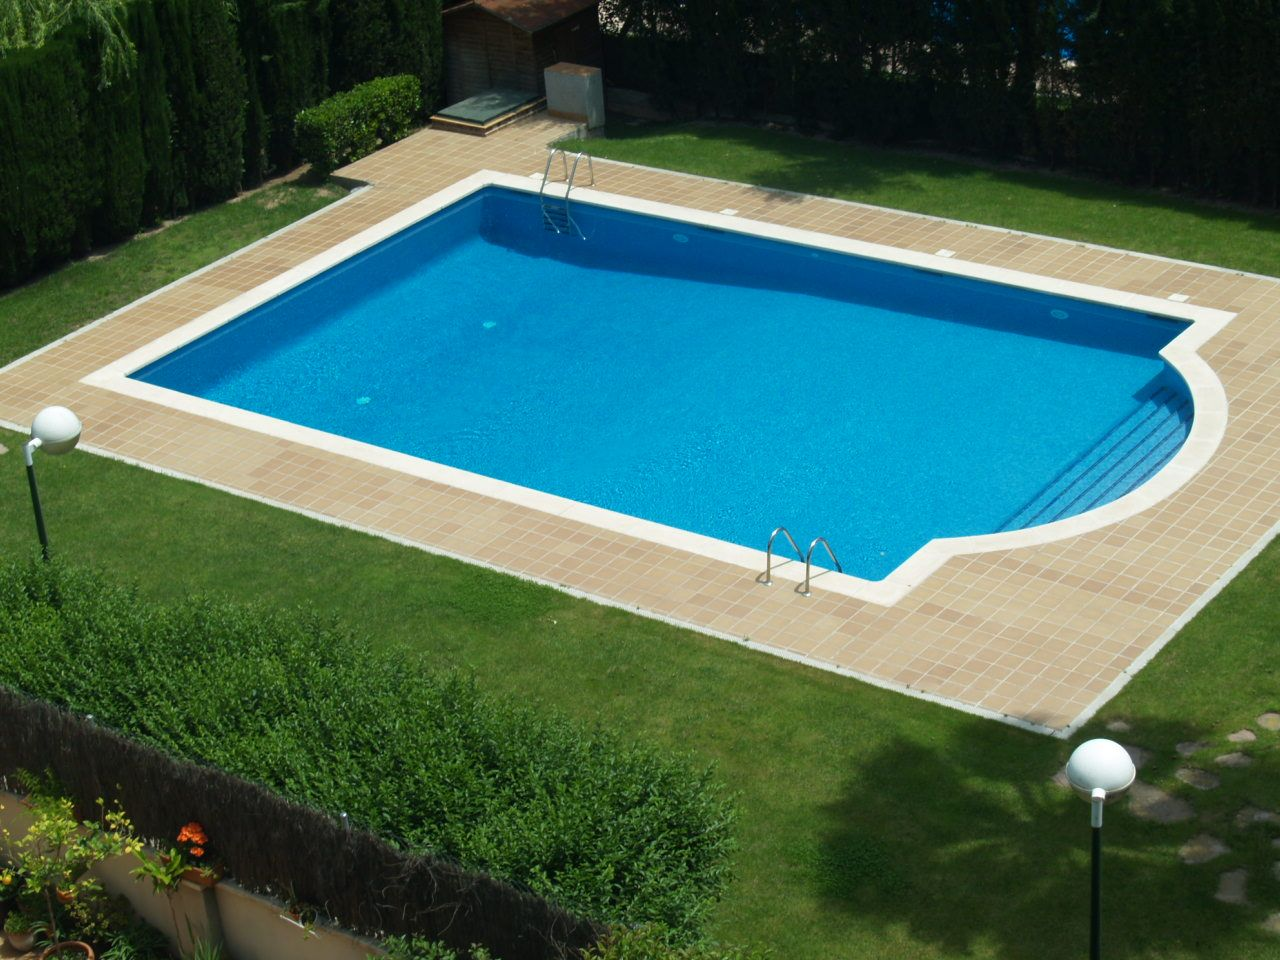 Rectangular Inground Pool Designs swimming pool: rectangular inground pool with small fountain